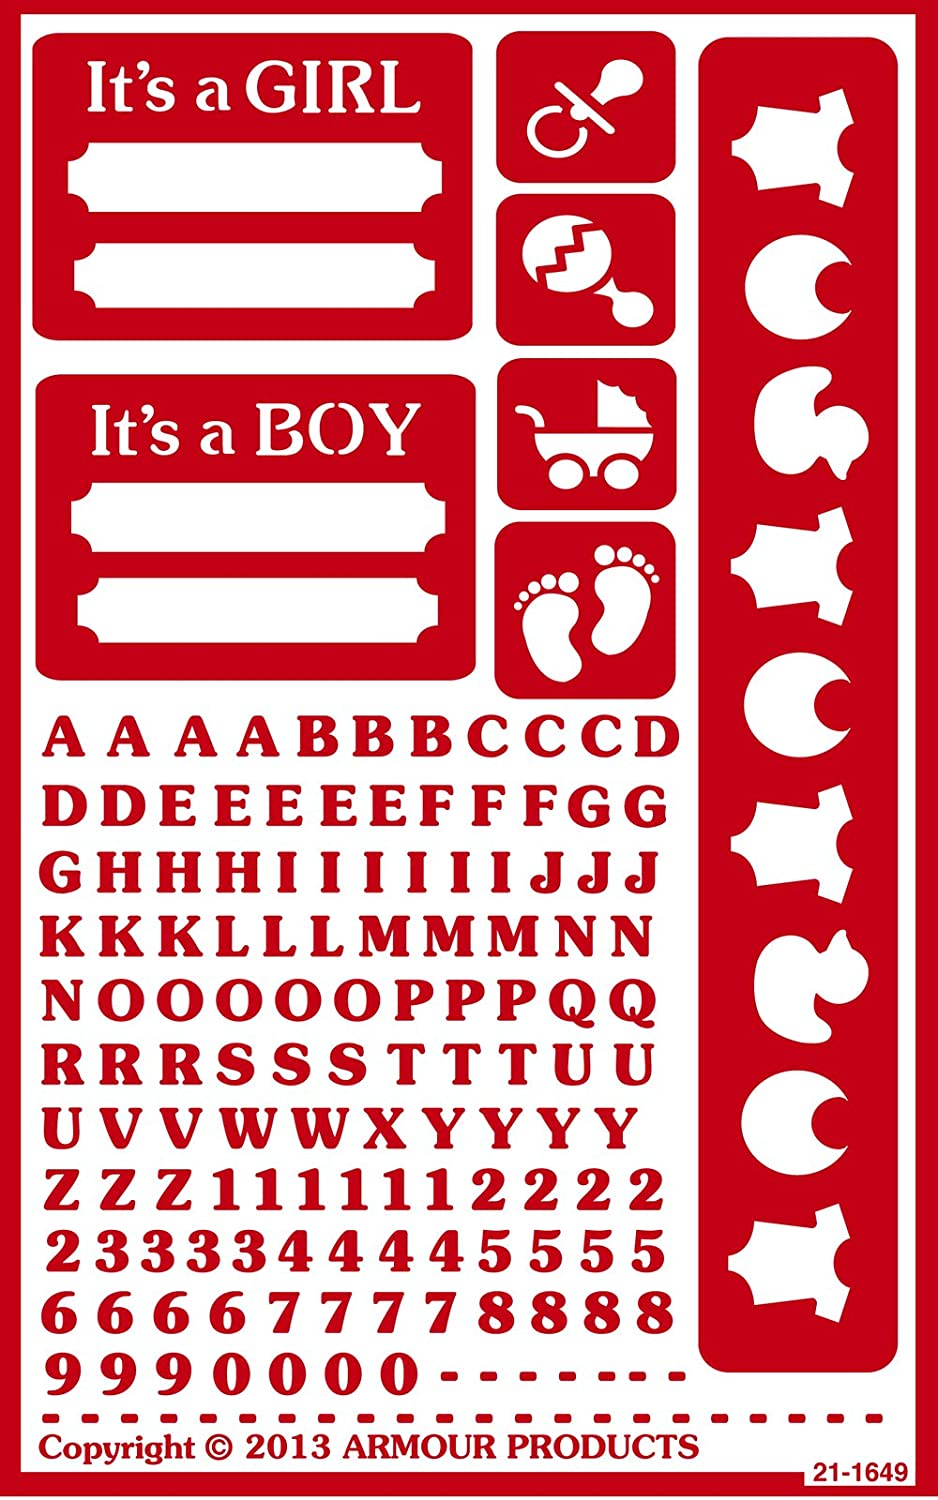 Armour Products Over N Over Glass Etching Stencil, 5-Inch by 8-Inch, It's a Boy It's a Girl 21-1649